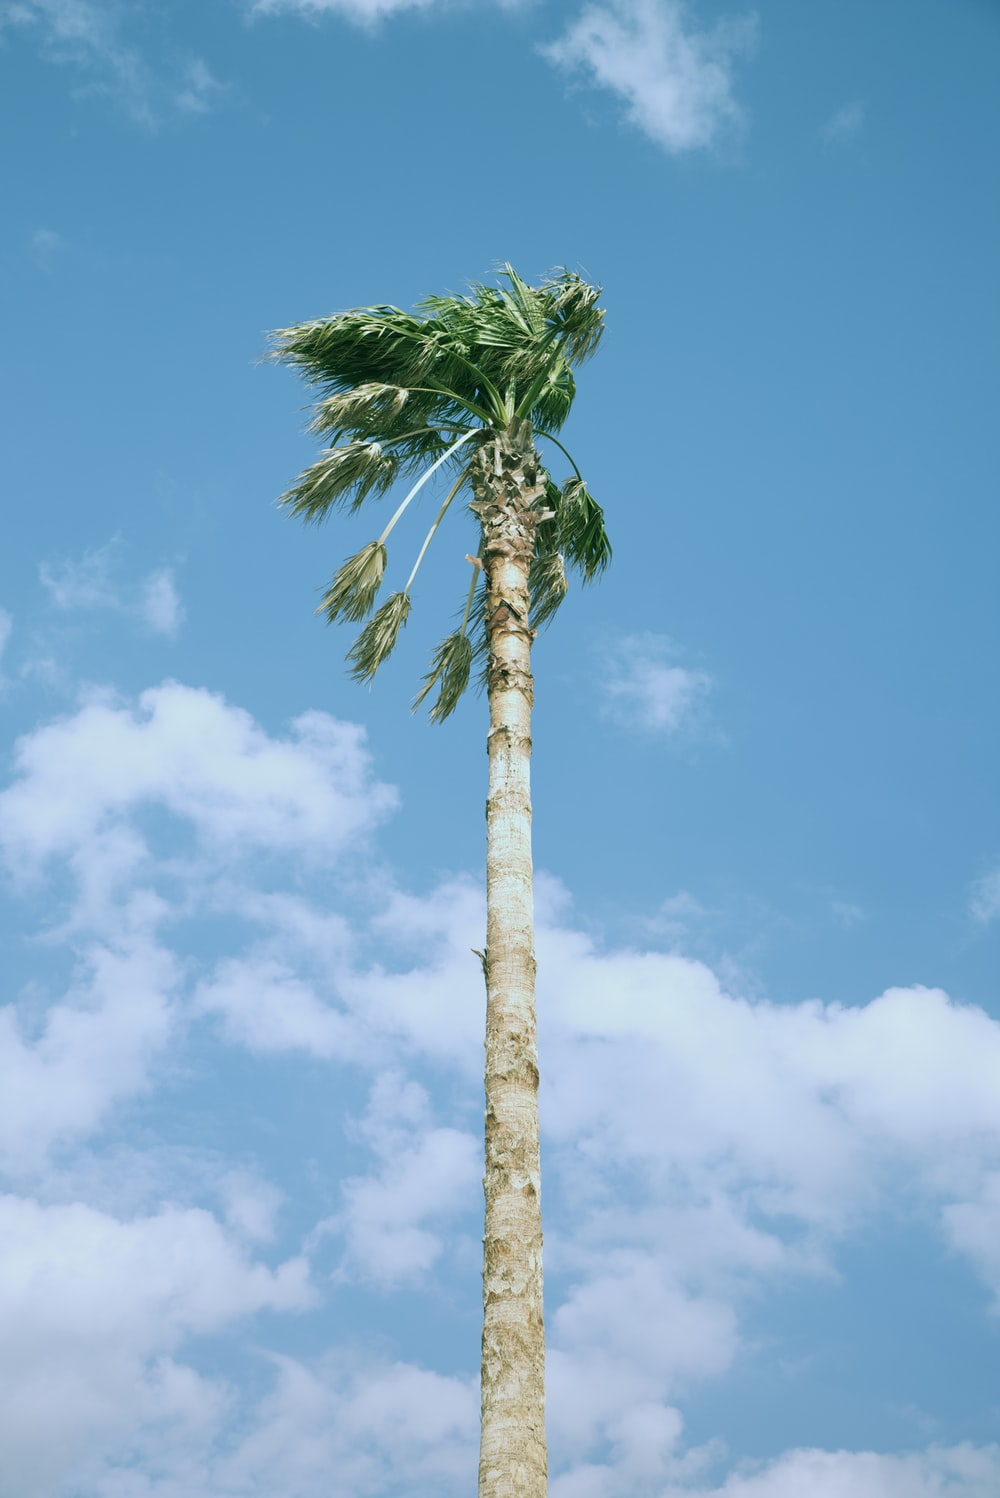 low-angle photo of palm trees under blue sky